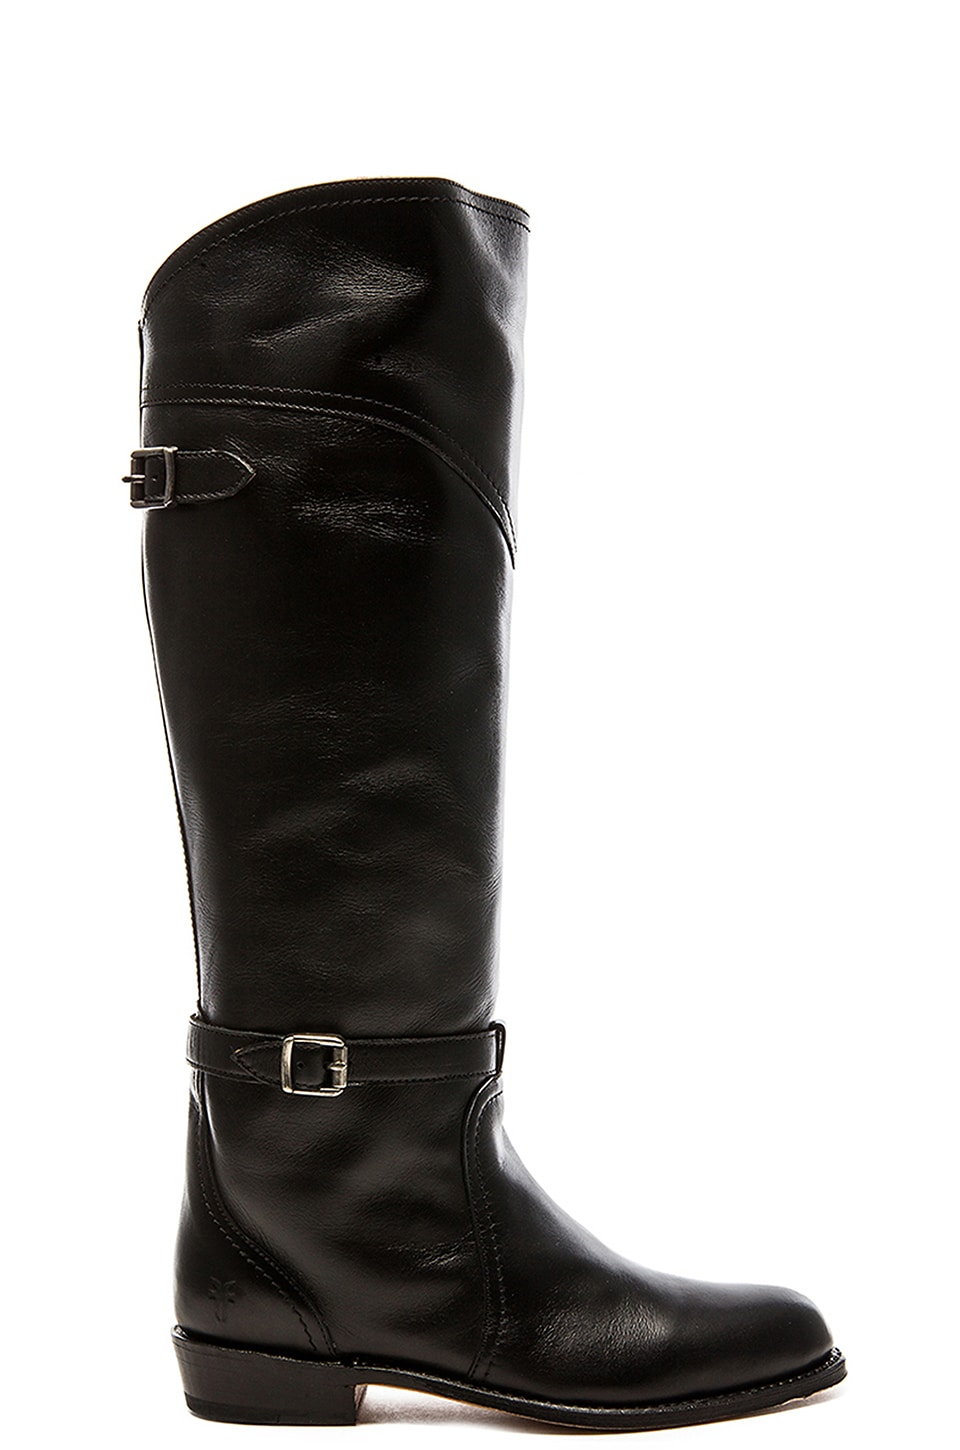 Frye Dorado Classic Riding Boot in Black